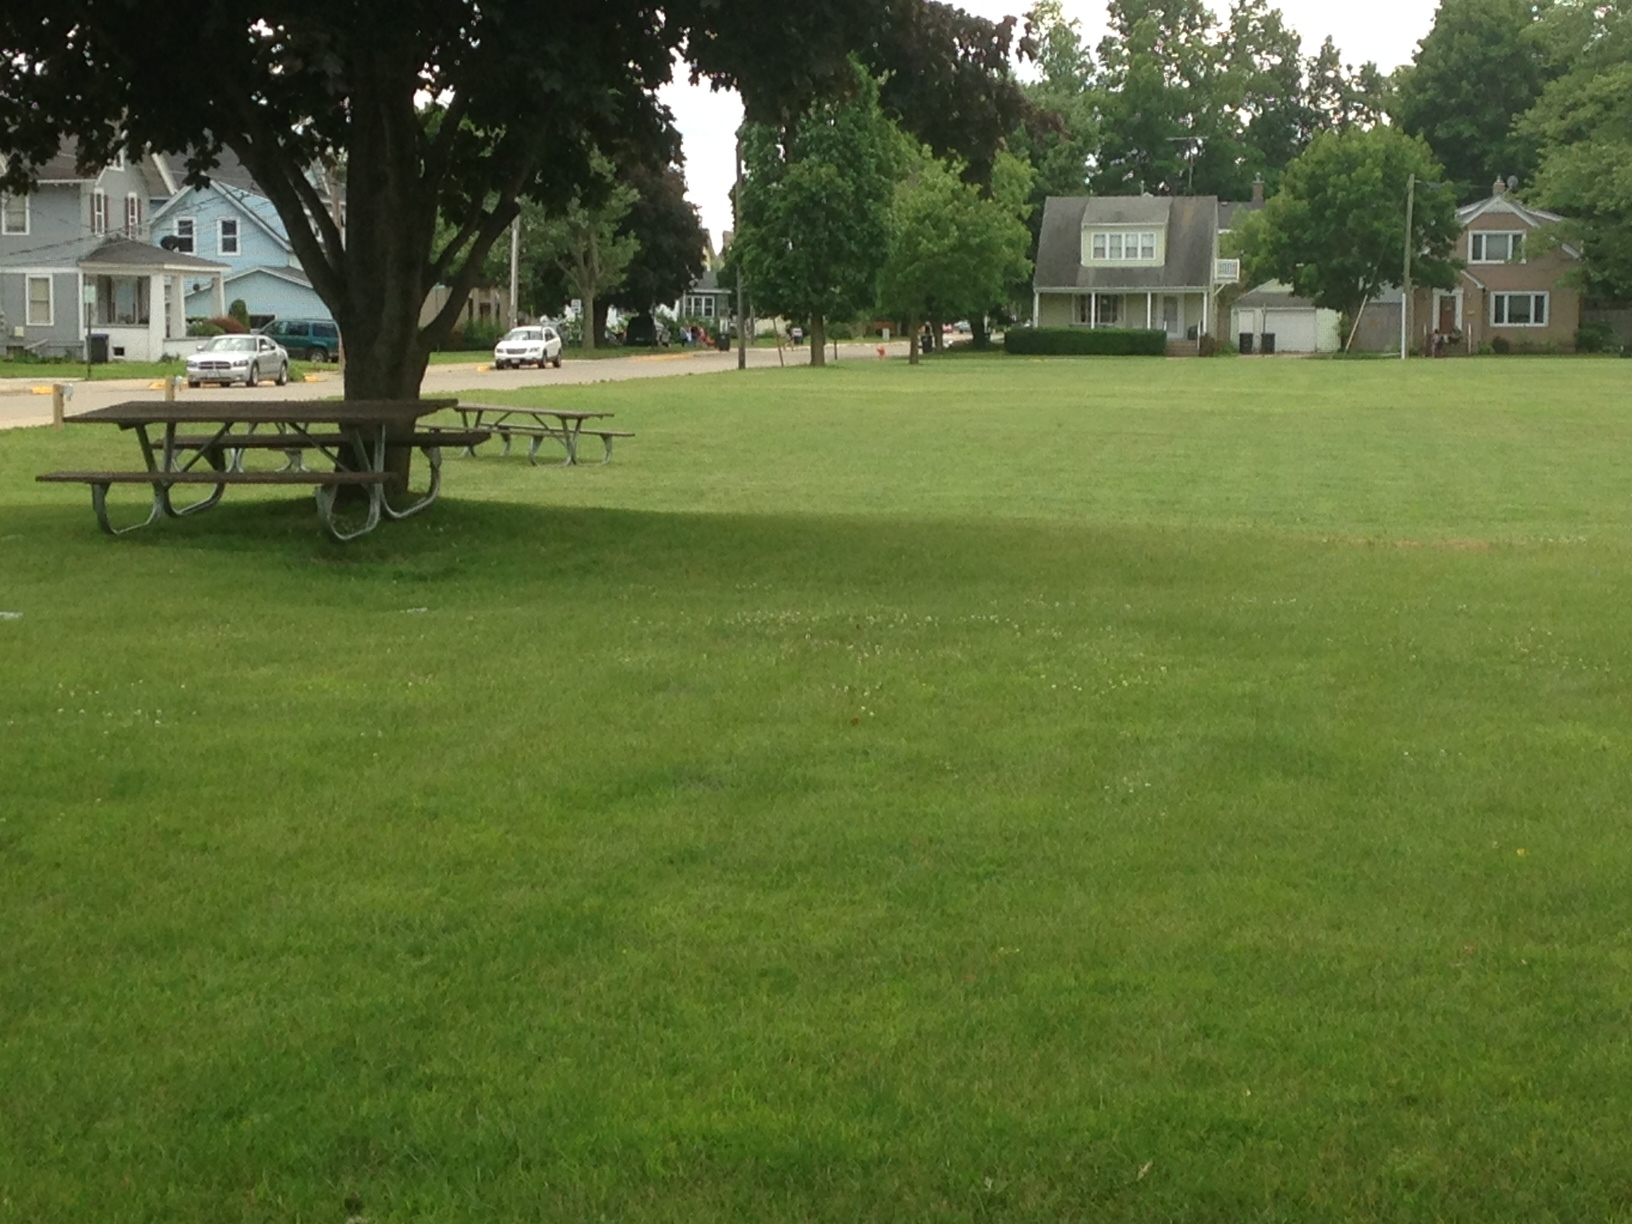 City Of Shawano Moves Forward With Planning Park And Rec Advisory Referendum